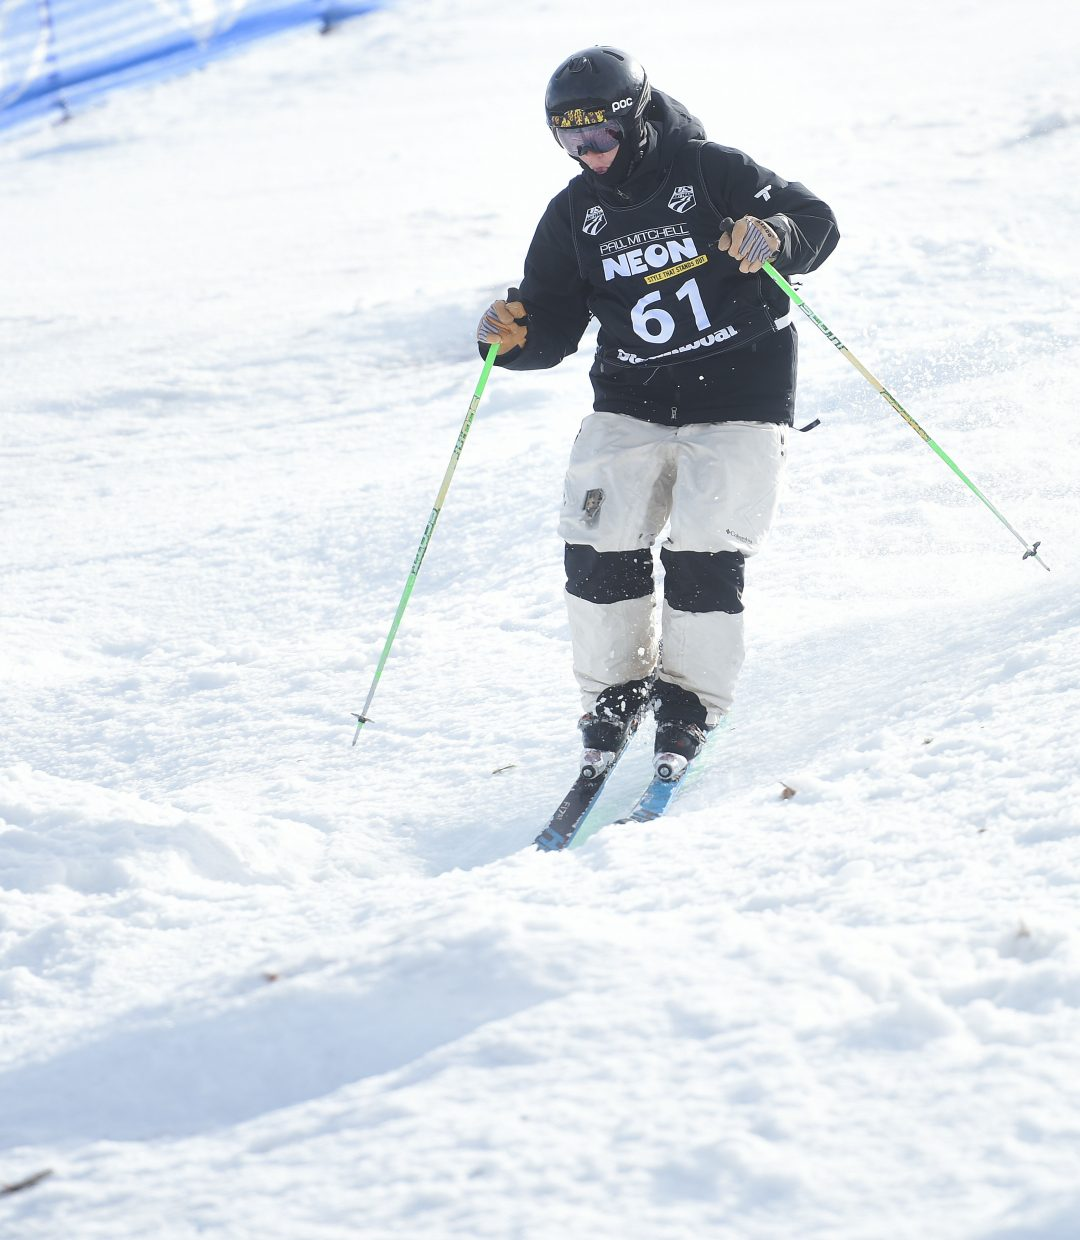 Brad Hoefer skis Friday in the U.S. Freestyle National Championships in Steamboat Springs.